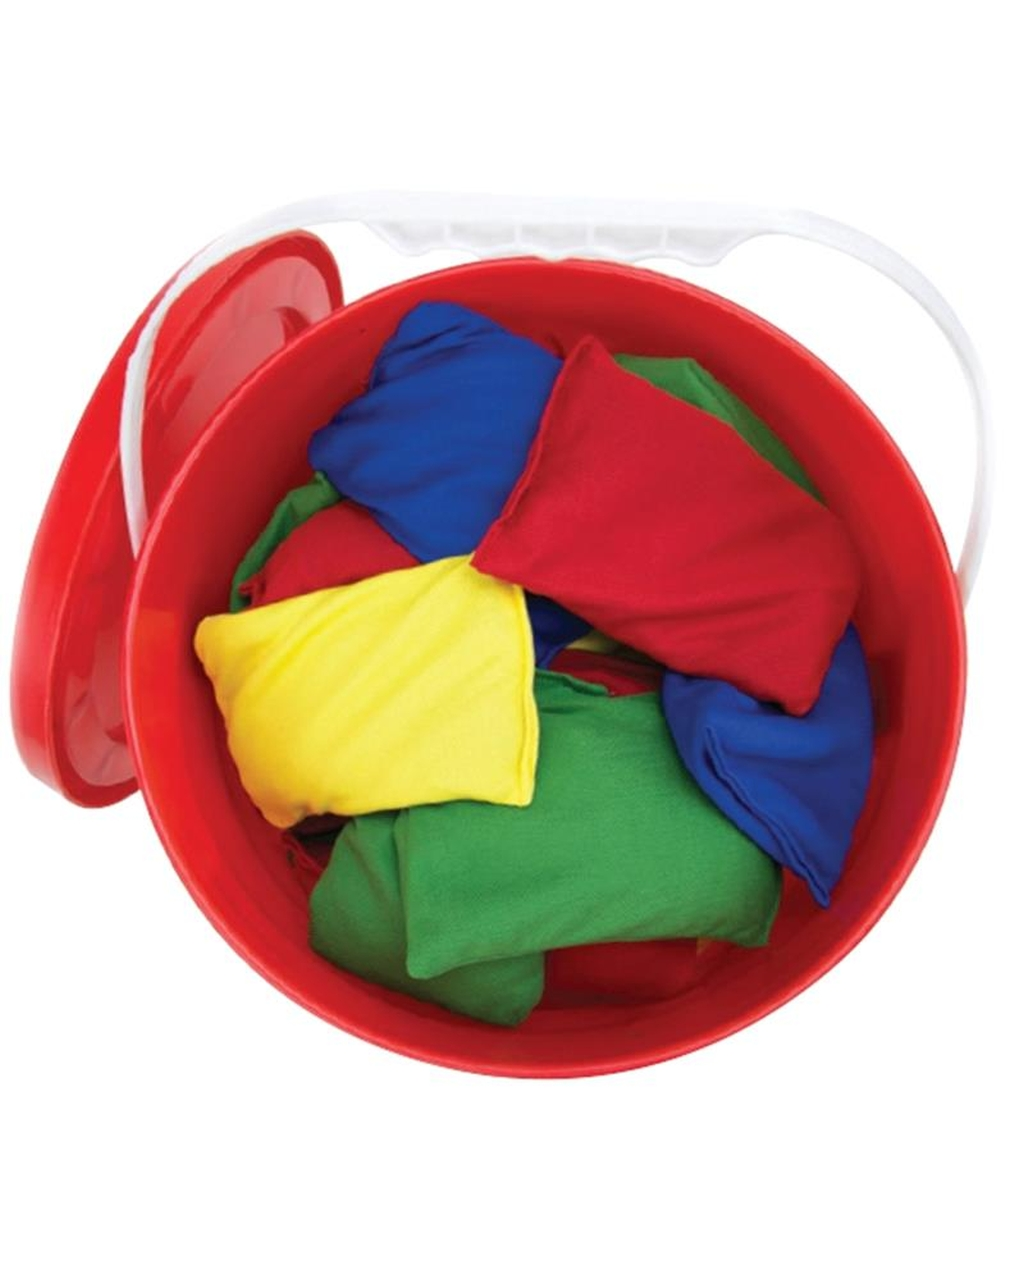 First Play Bean Bag Essential Tub